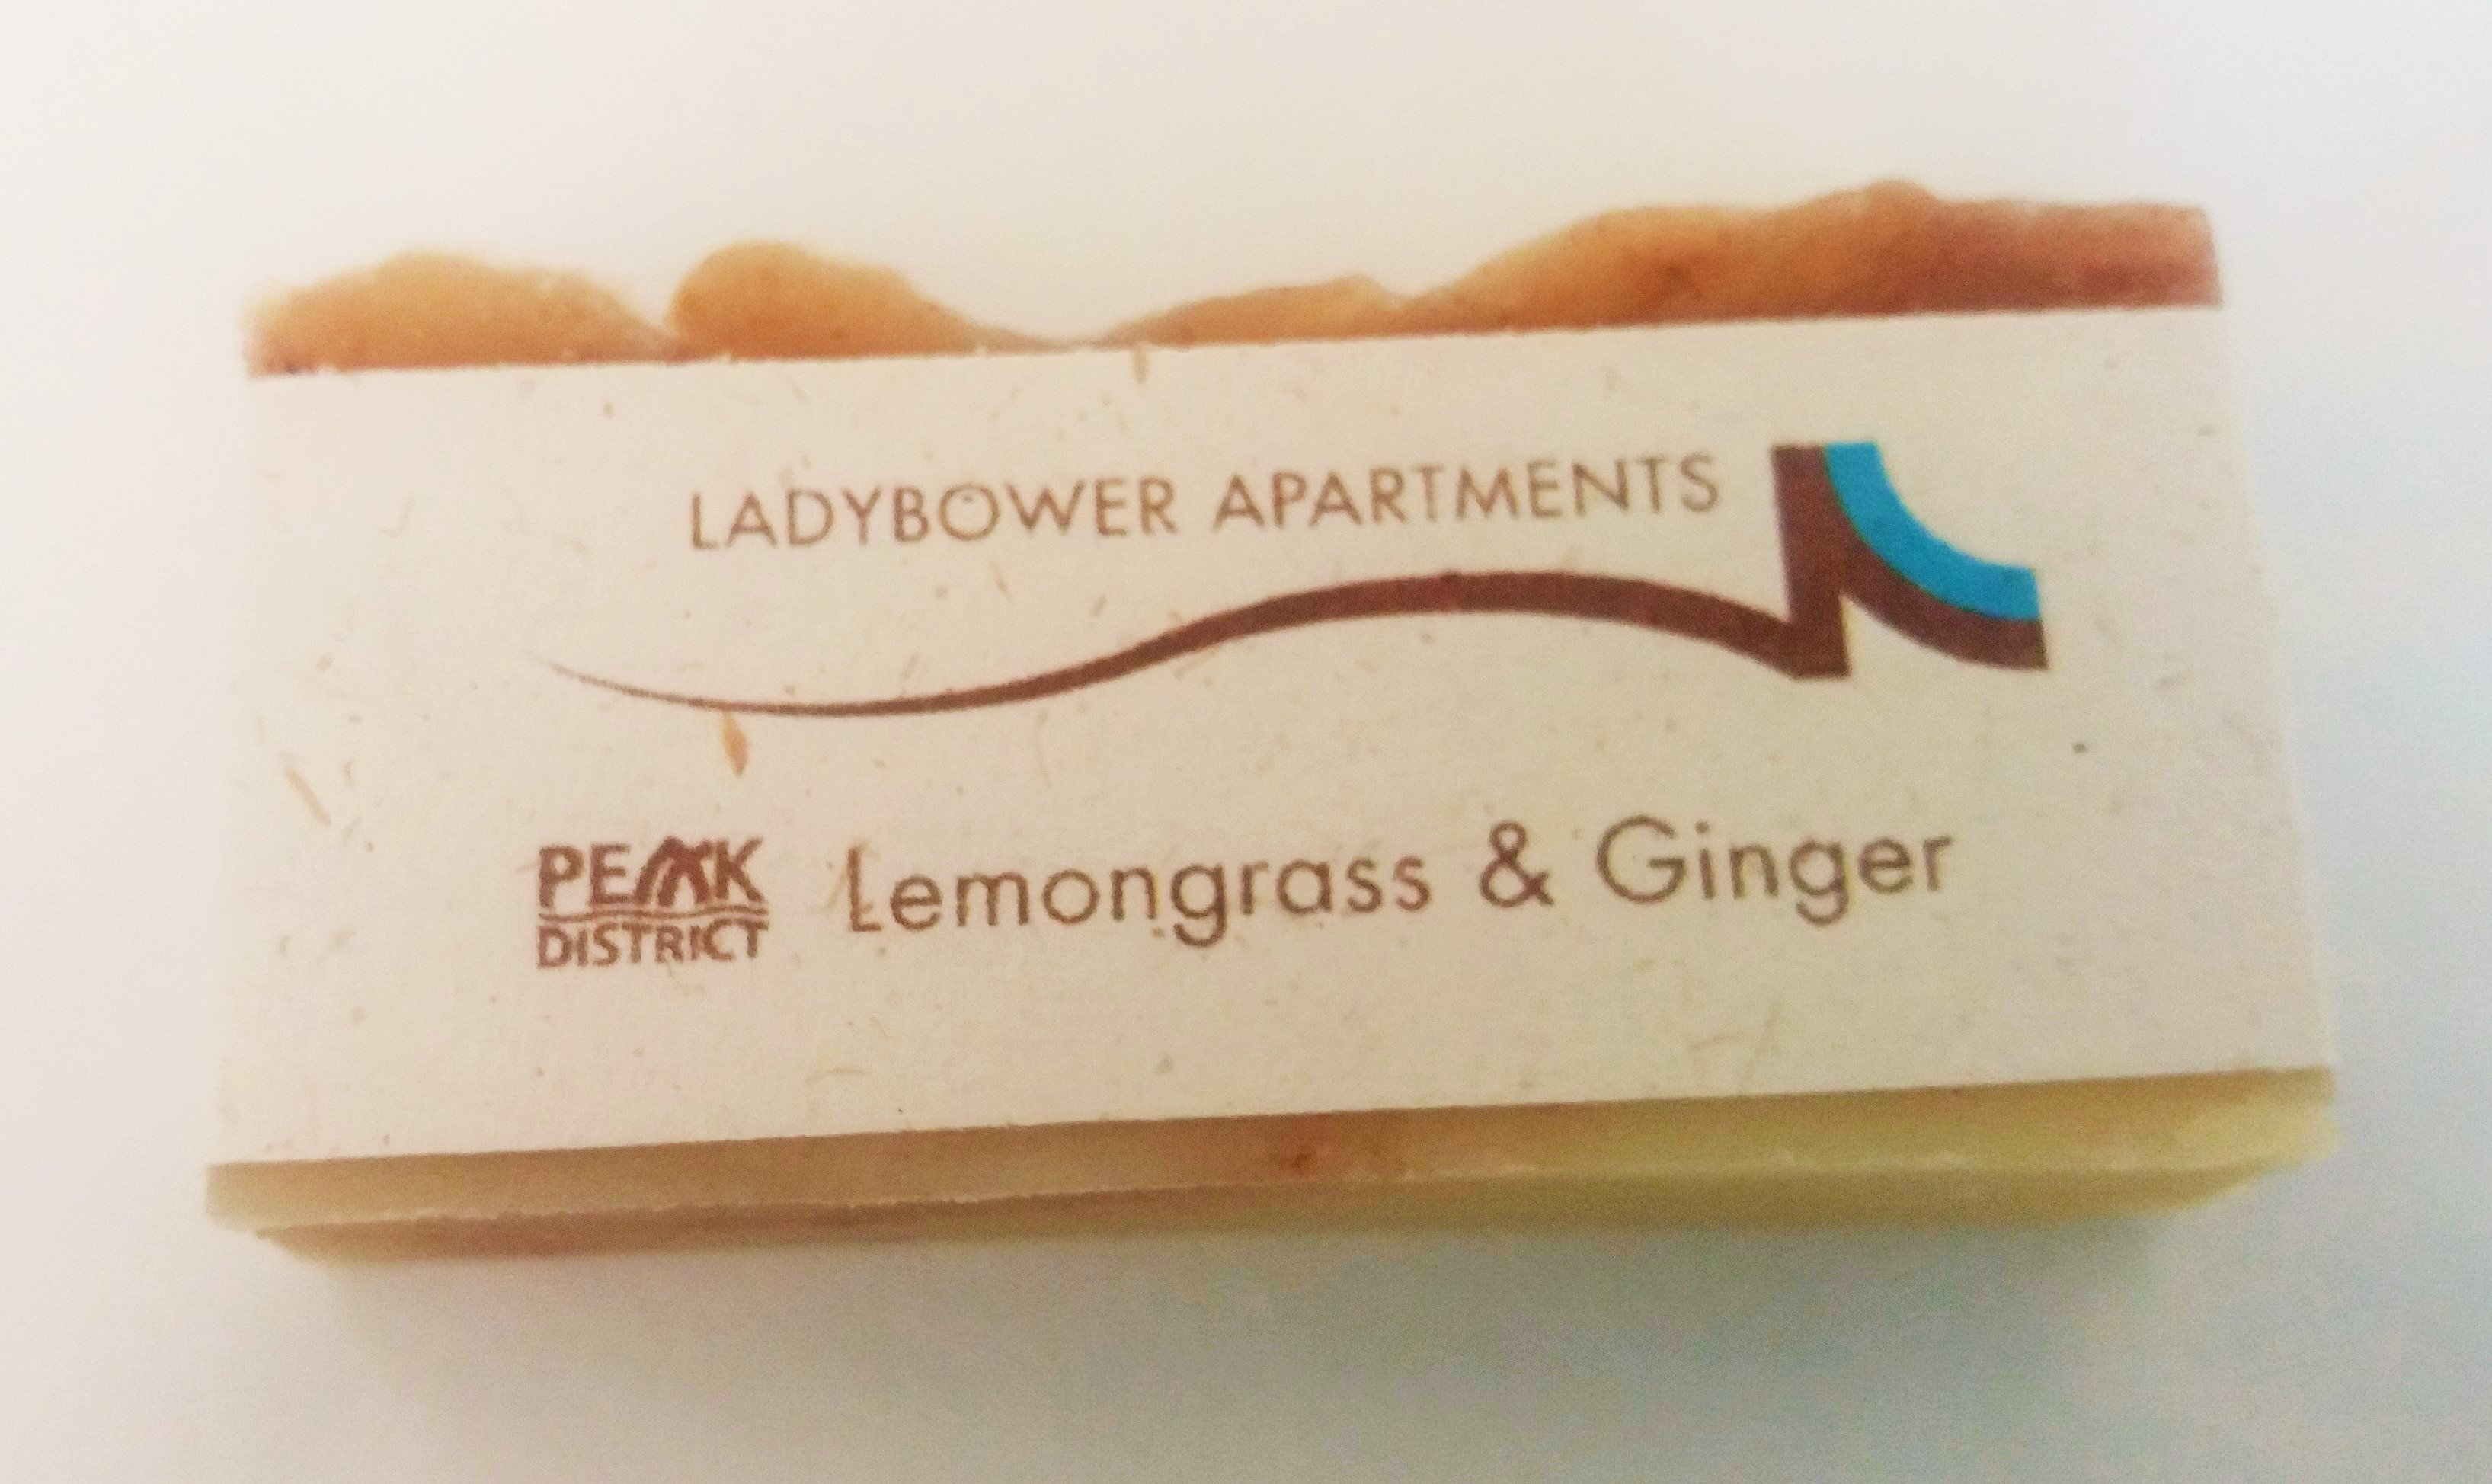 Ladybower Apartments